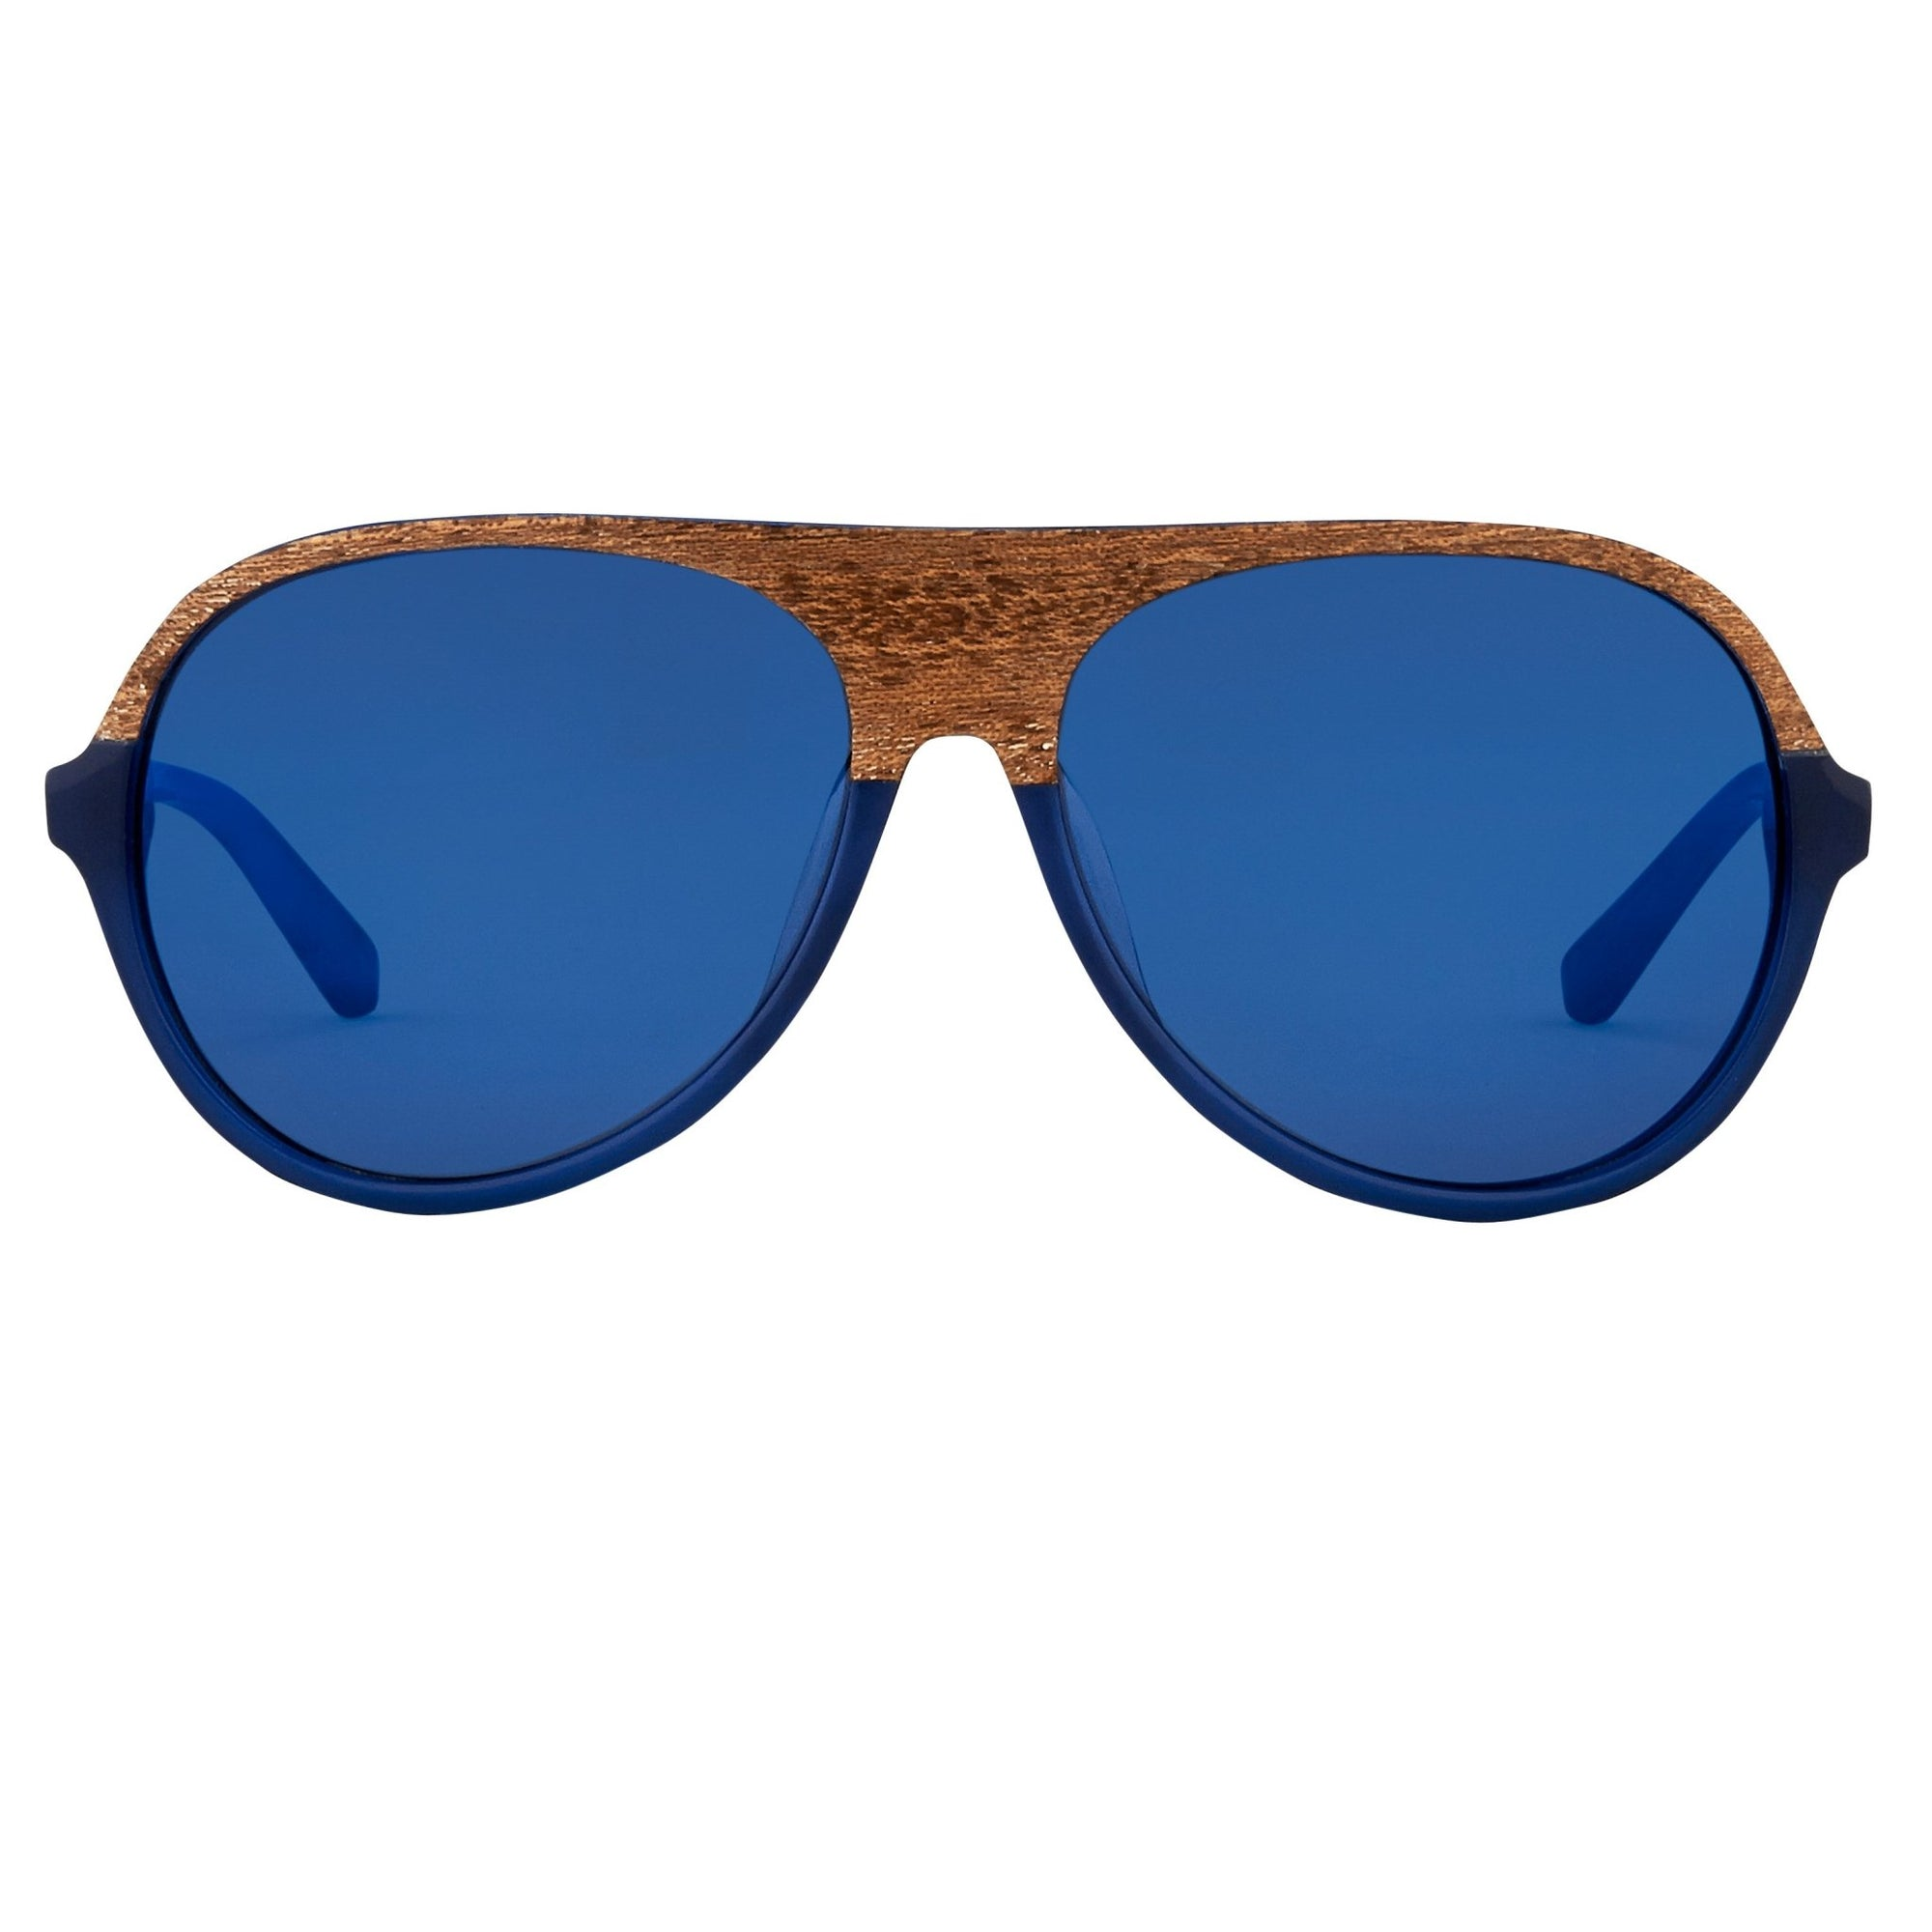 Phillip Lim Sunglasses Unisex Aviator Clear Blue and Brown Wood with CAT3 Blue Mirror Lenses PL126C4SUN - Watches & Crystals